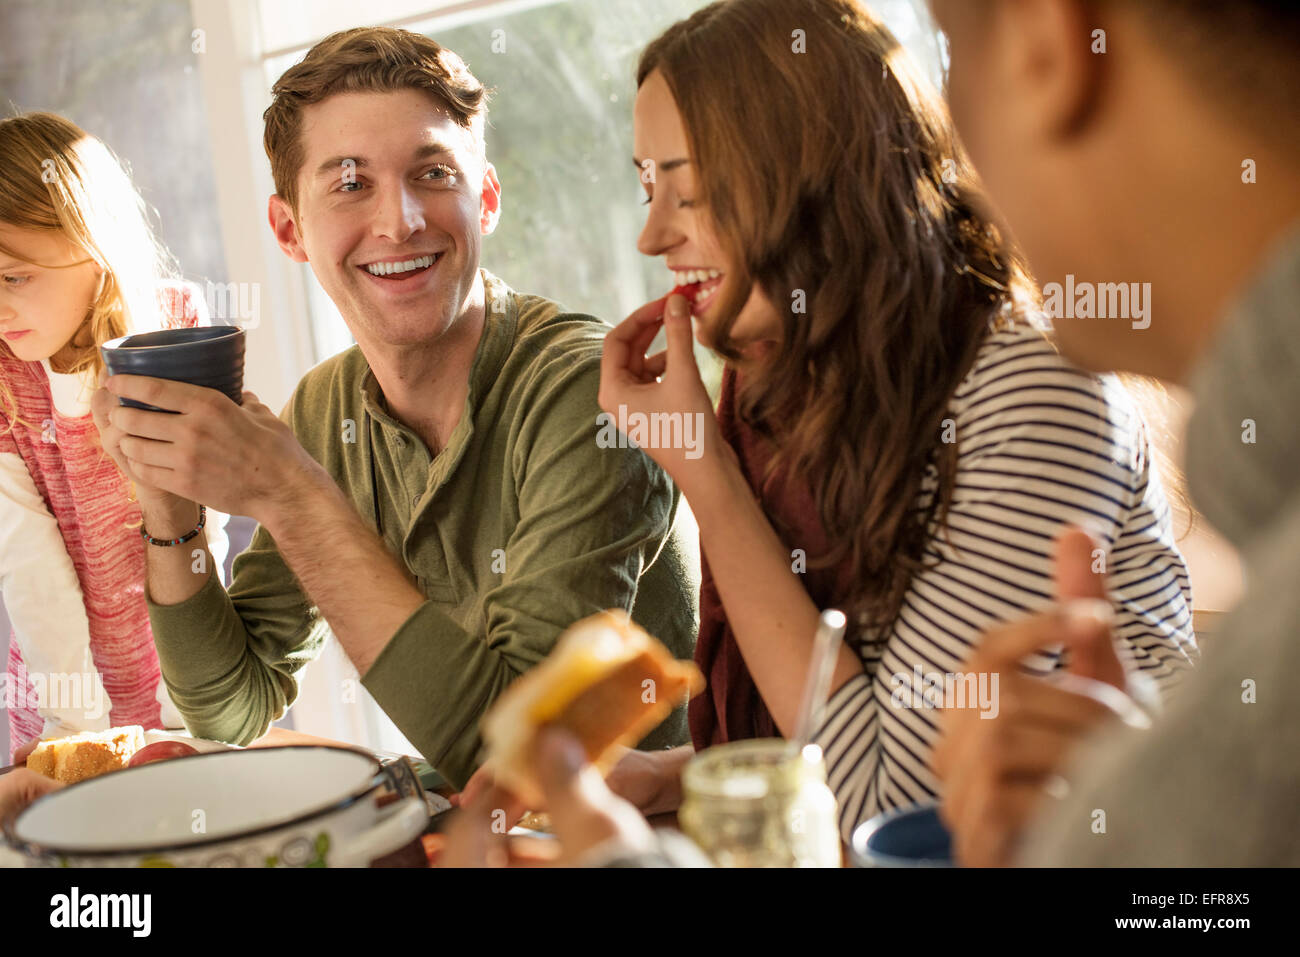 A group of people sitting at a table, smiling, eating, drinking and chatting. - Stock Image